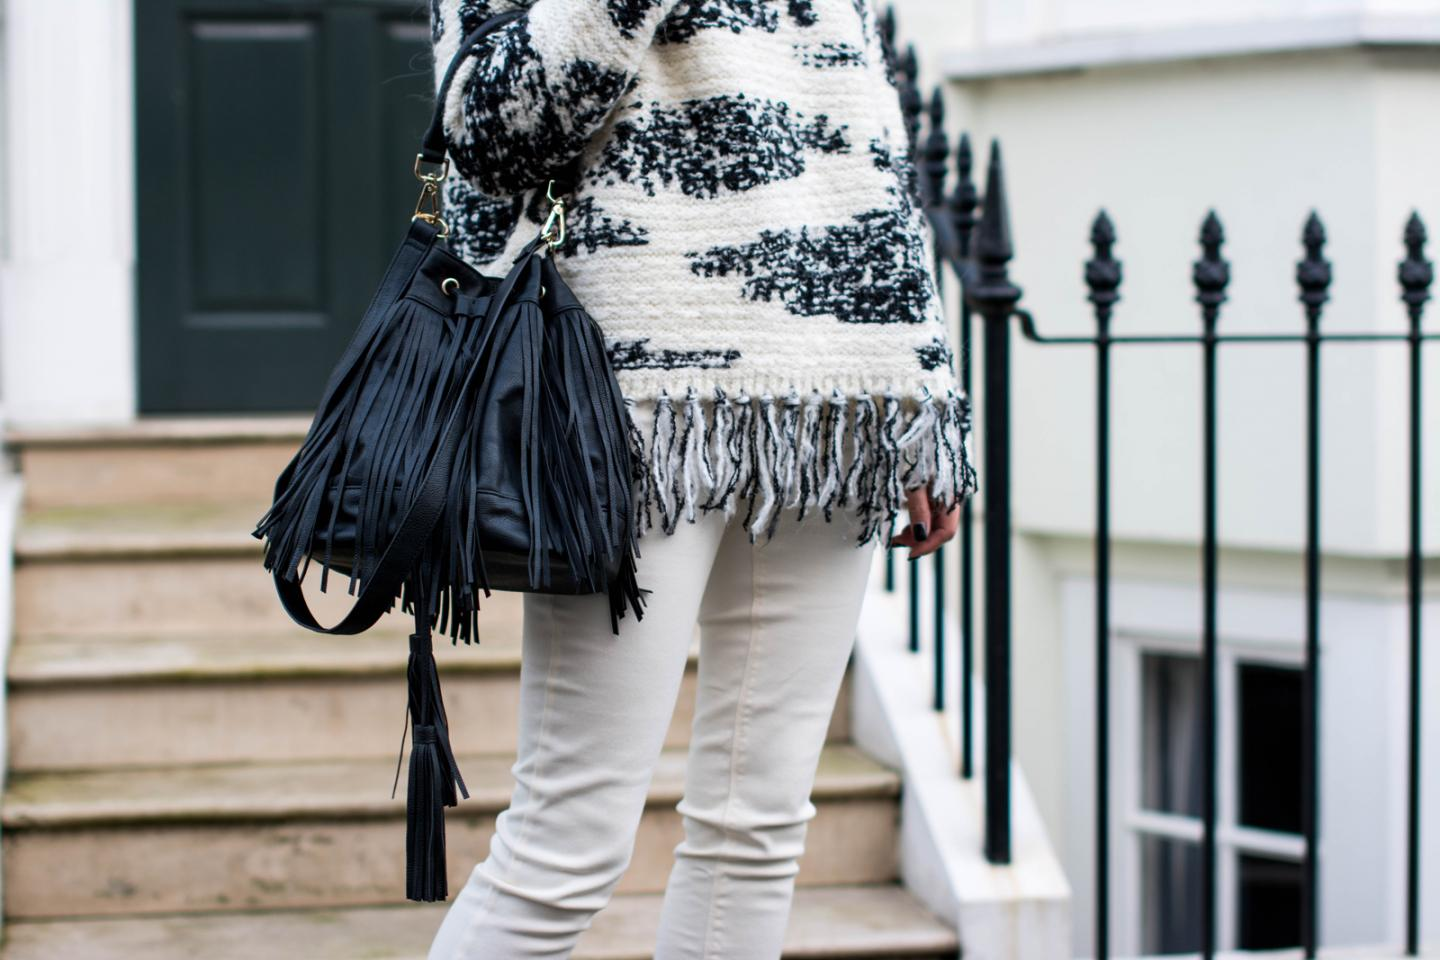 EJSTYLE - Zara fringe black white jumper, Zara TRF white jeans, Isabel Marant Inspired look, H&M fringed bucket bag, OOTD, fashion blogger, details